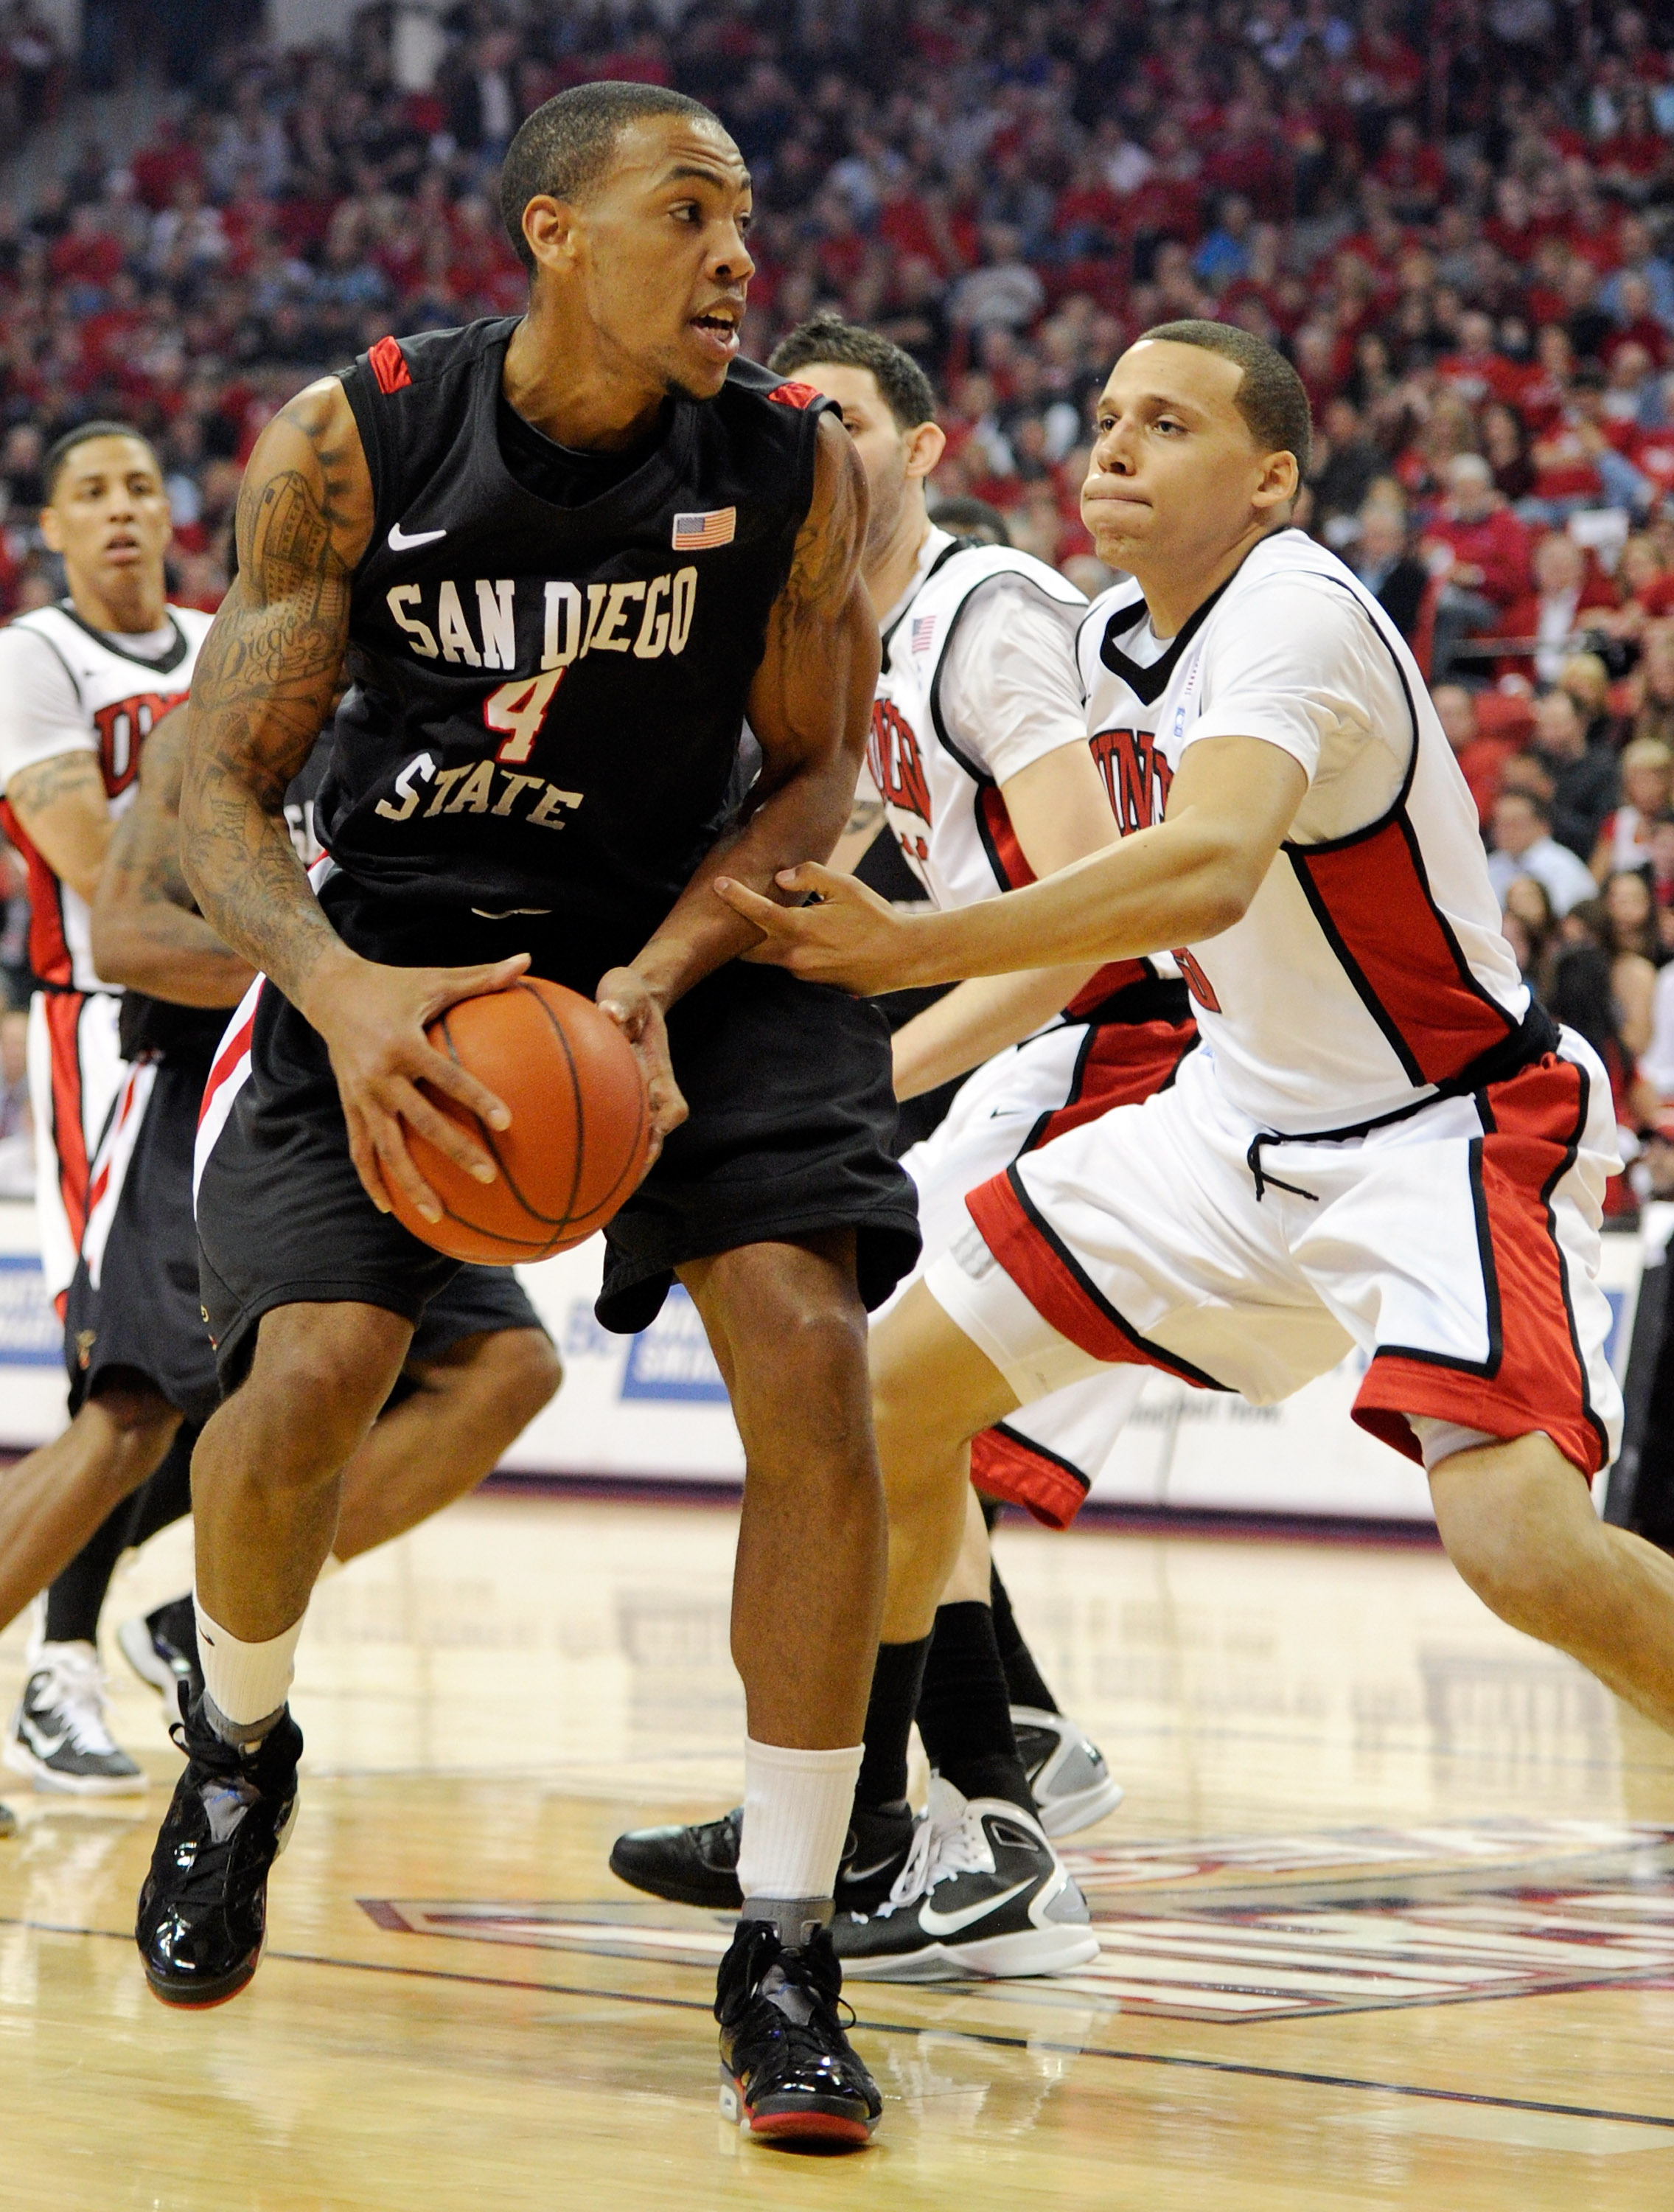 LAS VEGAS, NV - FEBRUARY 12:  Malcolm Thomas #4 of the San Diego State Aztecs goes to the basket against Chace Stanback #22 of the UNLV Rebels during their game at the Thomas & Mack Center February 12, 2011 in Las Vegas, Nevada. San Diego State won 63-57.